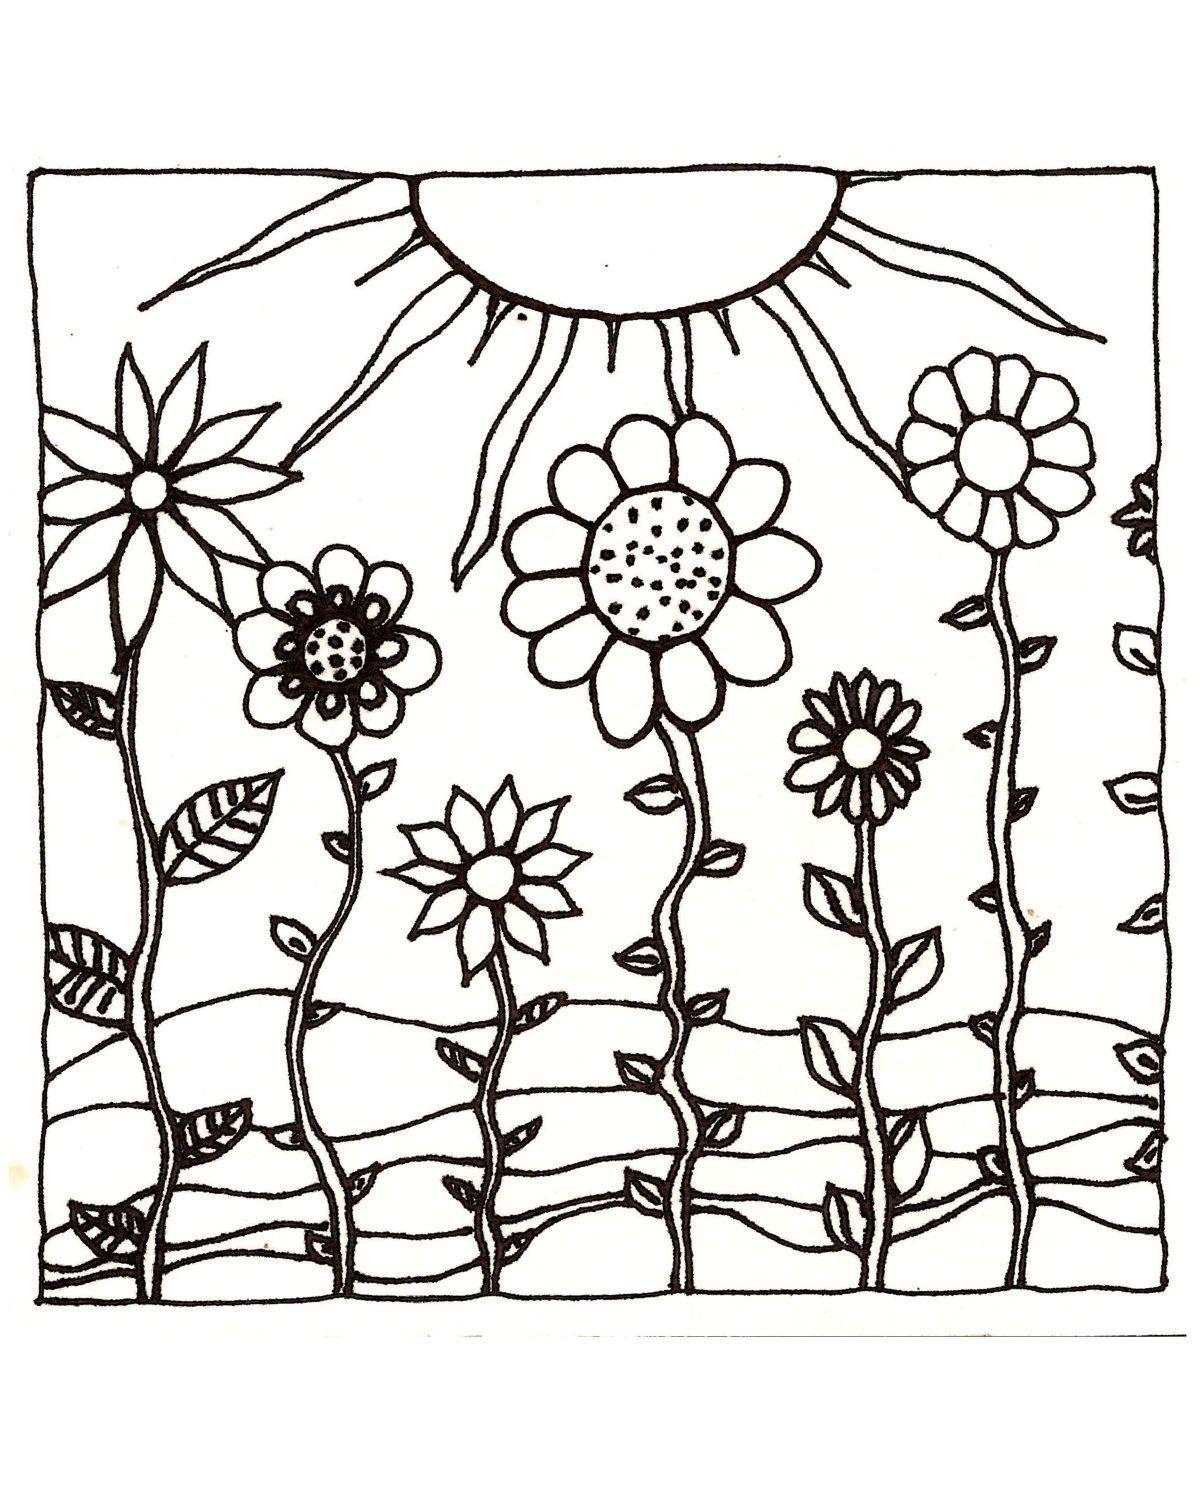 Download Printableadult Coloring Page Digital Hand Drawn